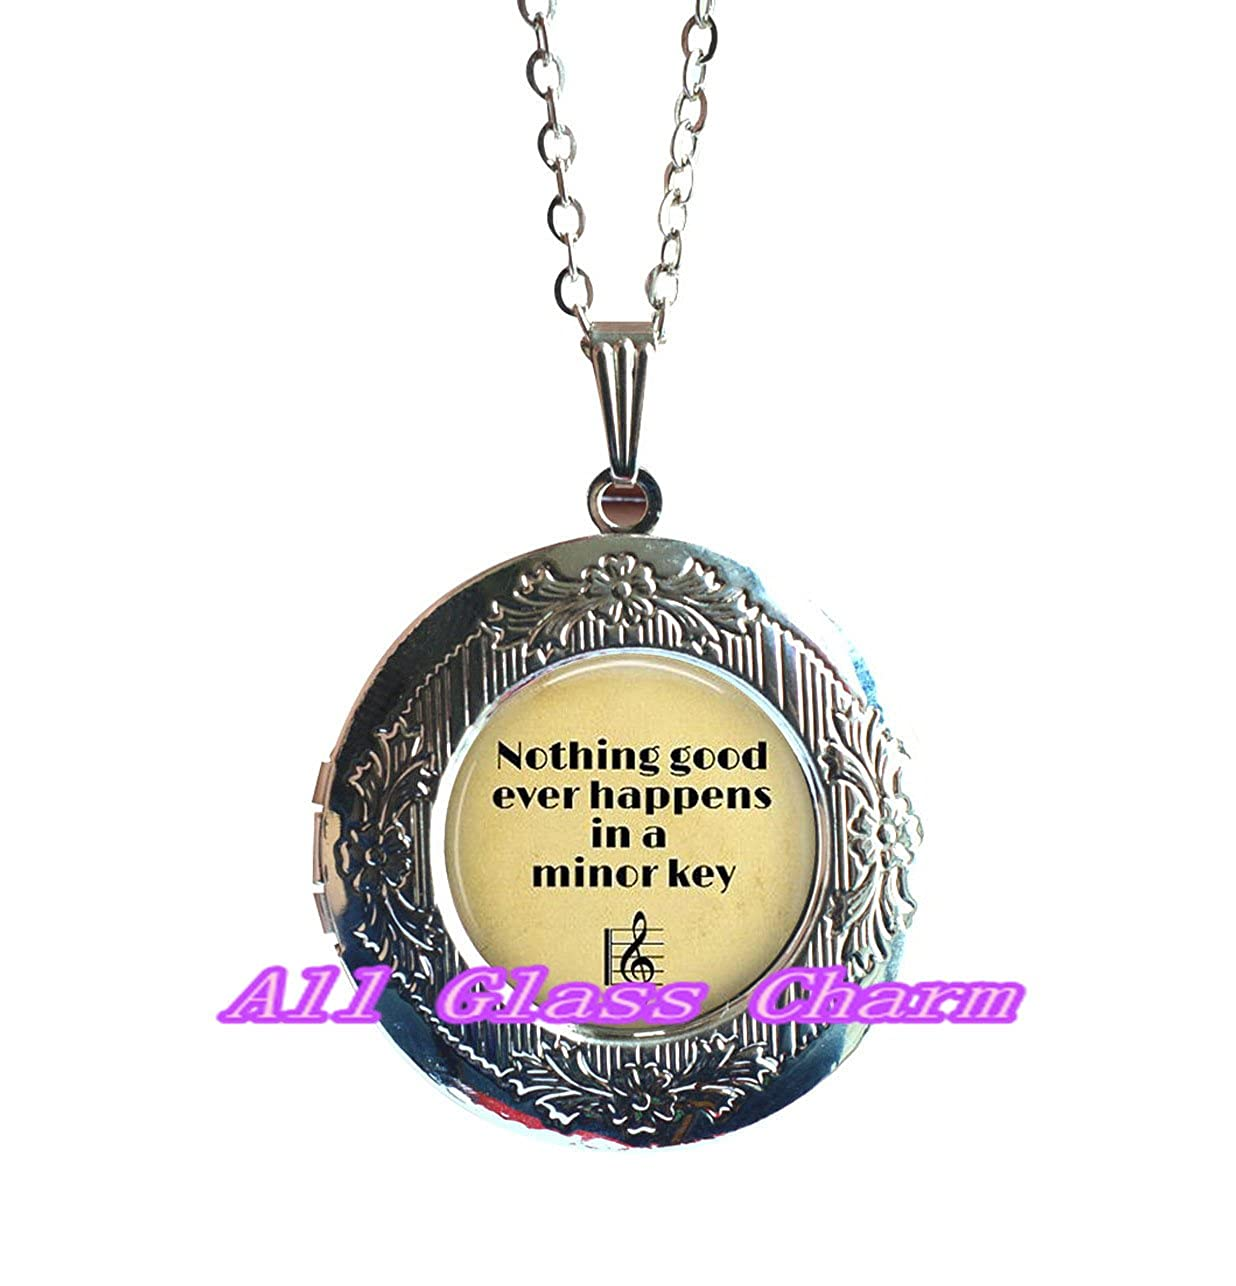 Nothing Good Ever Happens in a Minor Key Music Jewelry Gift for Musician,AS0279